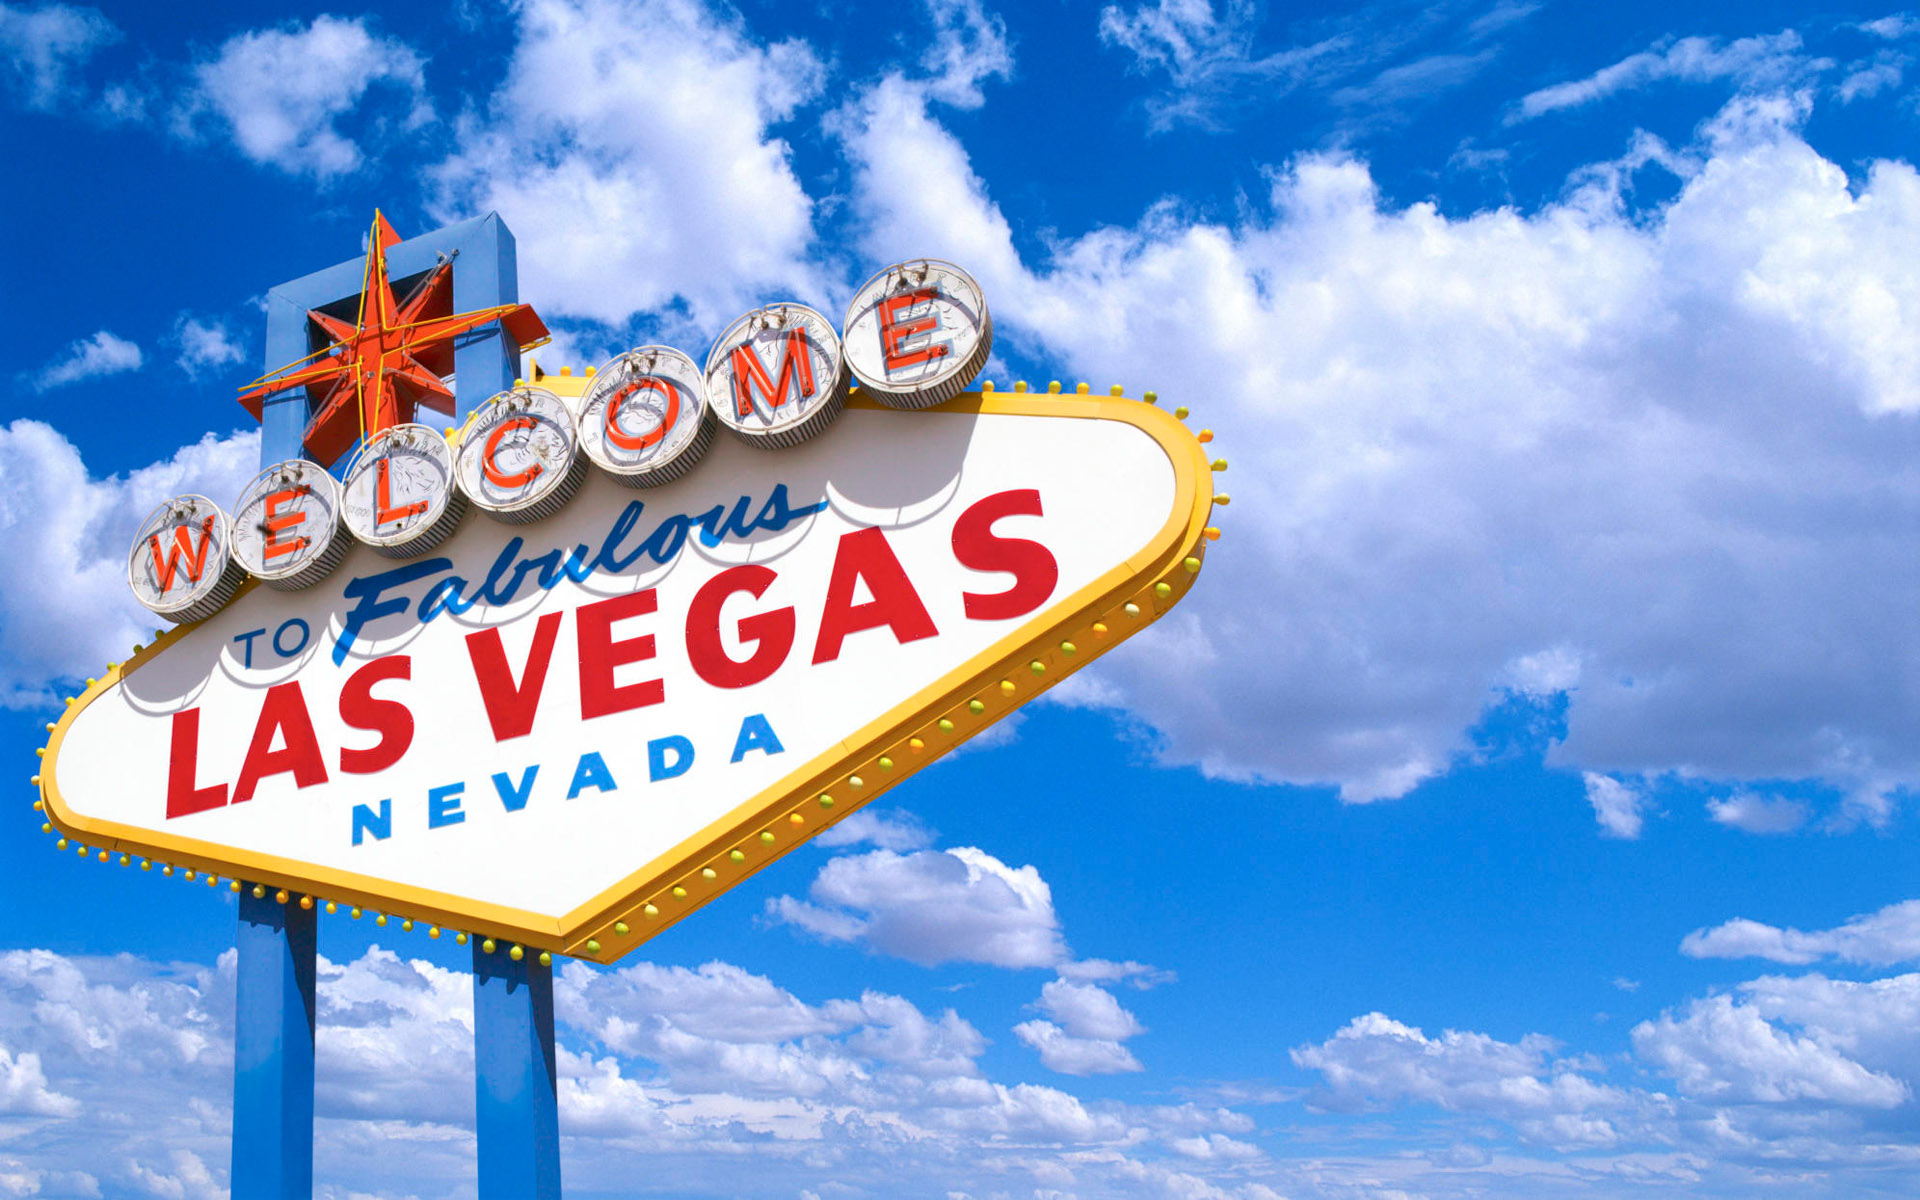 Welcome To Las Vegas Wide  Free Images at Clker.com - vector clip art online, royalty free